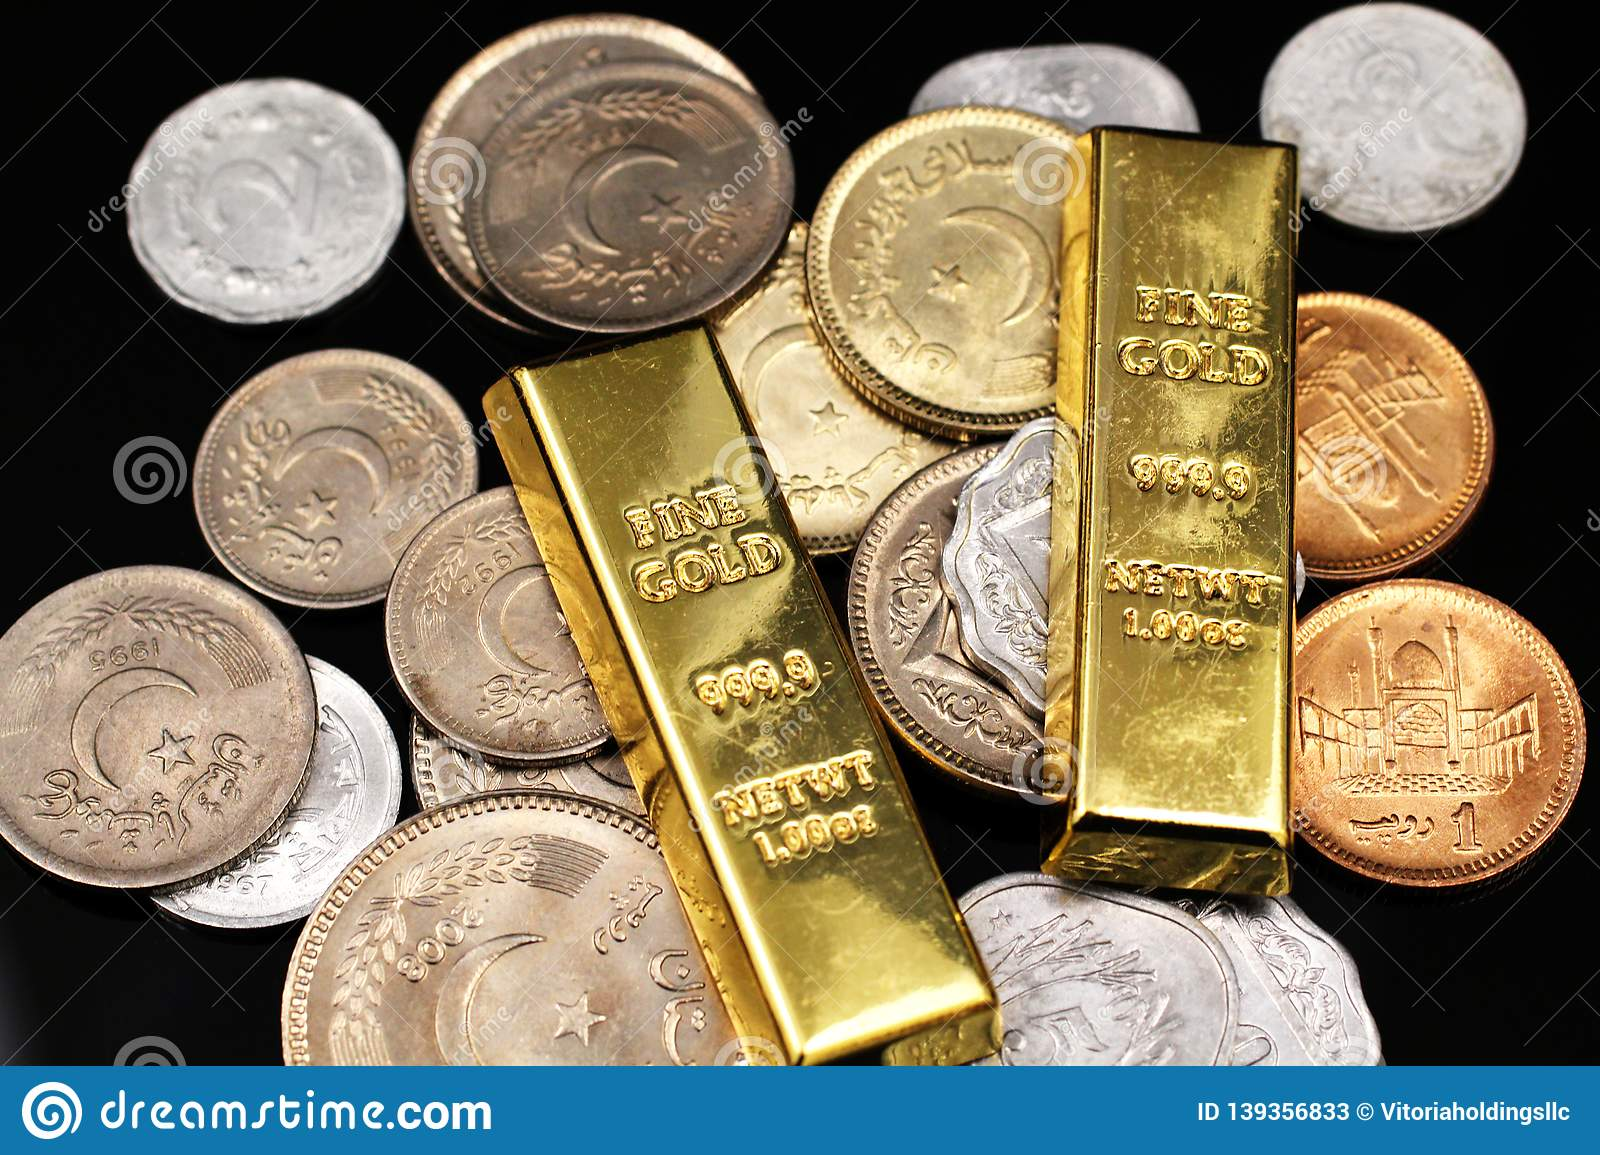 Gold One Ounce Ingots With Coins From Pakistan On A Black